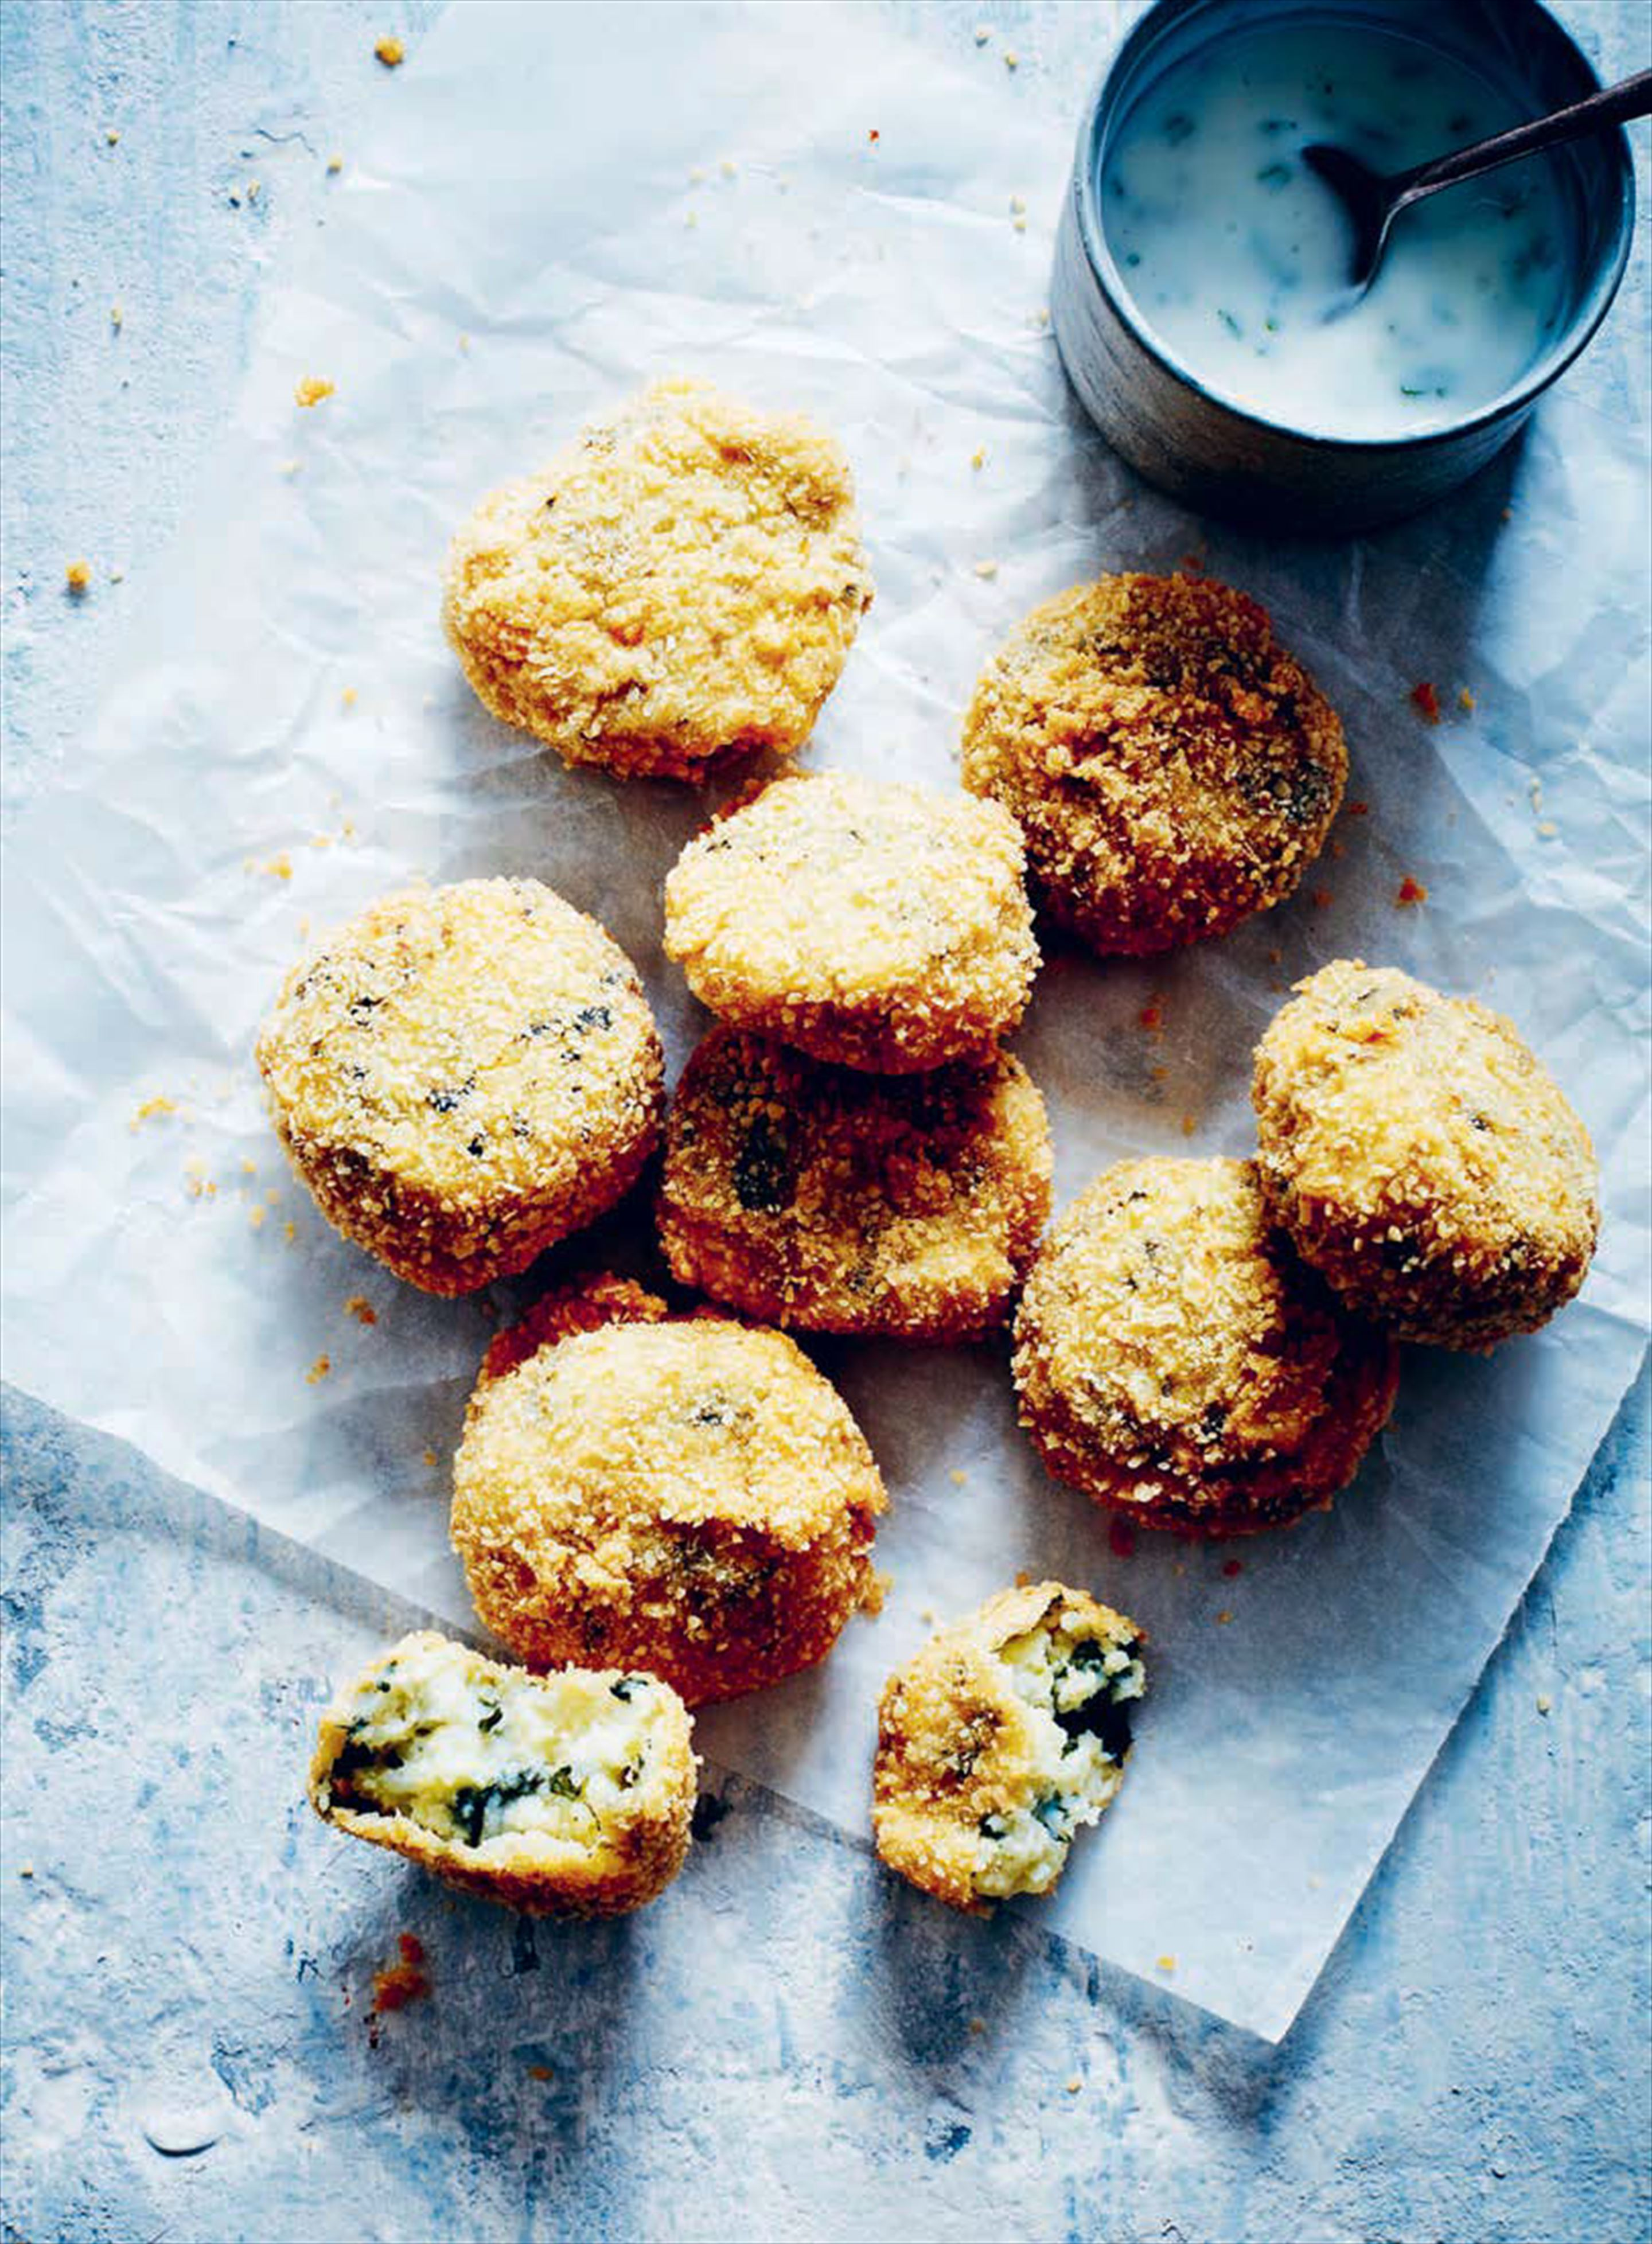 Potato and spinach croquettes